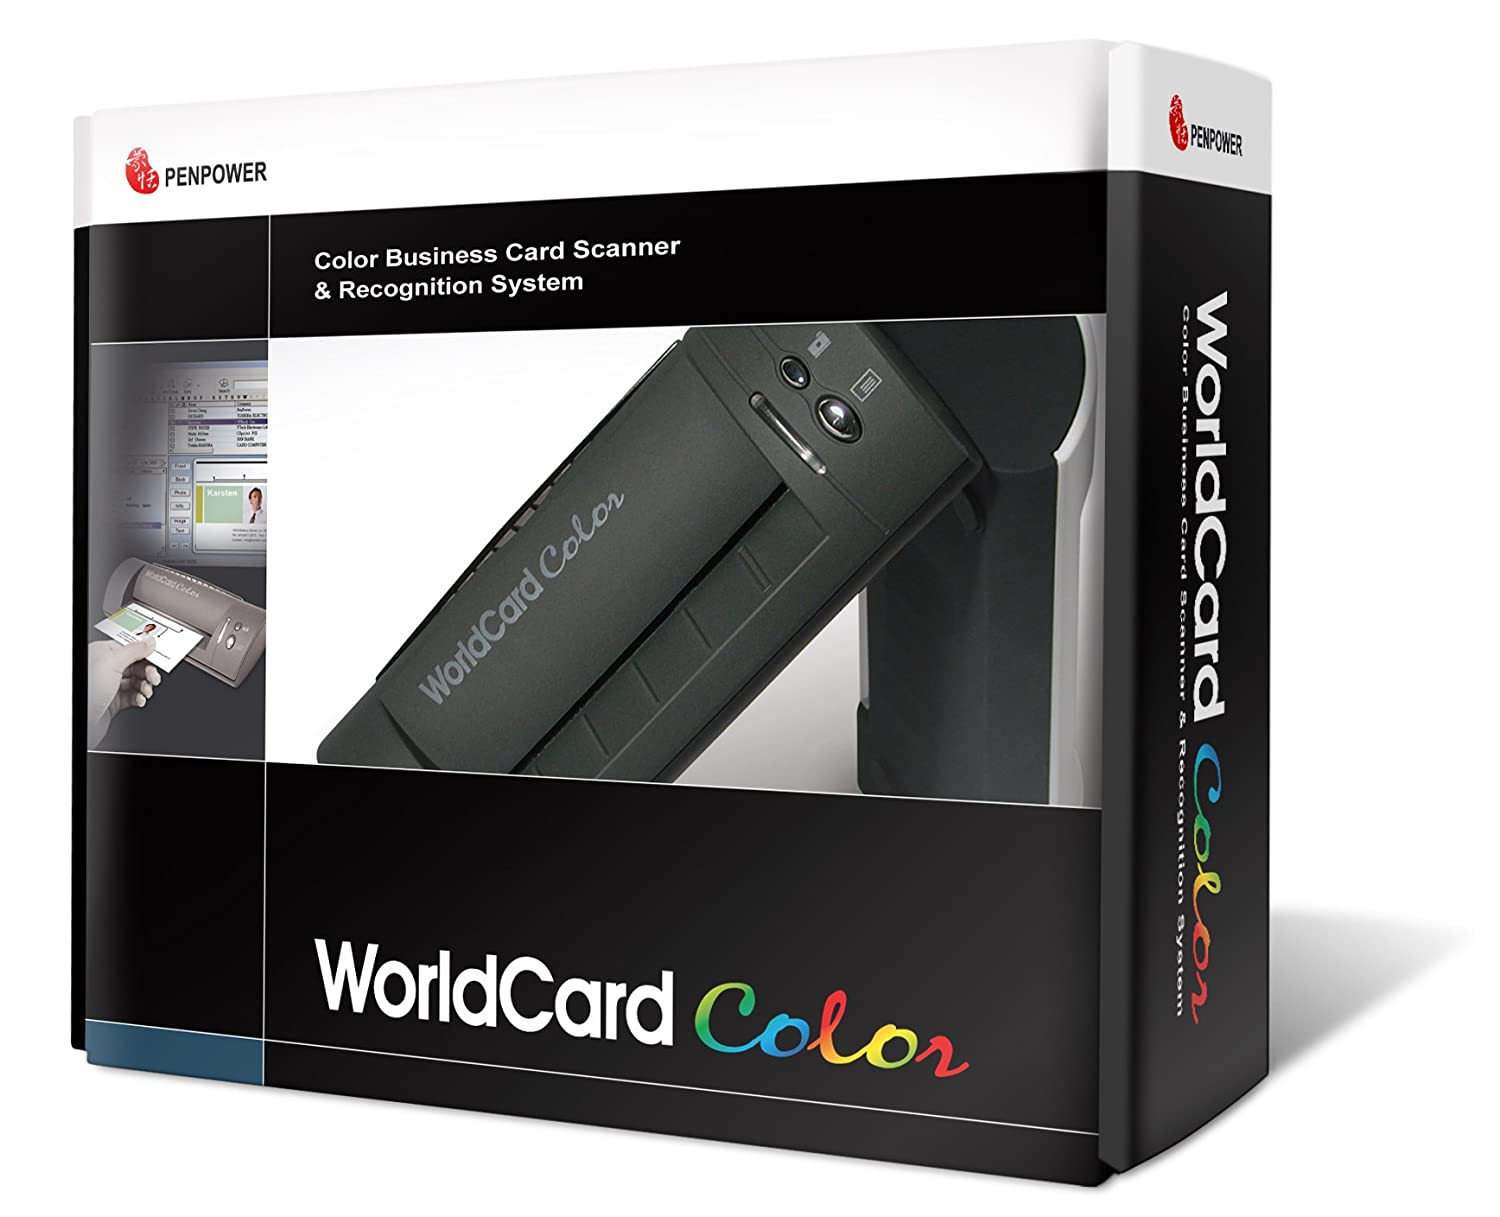 Amazon.com: Penpower WorldCardColor Color Business Card Scanner ...